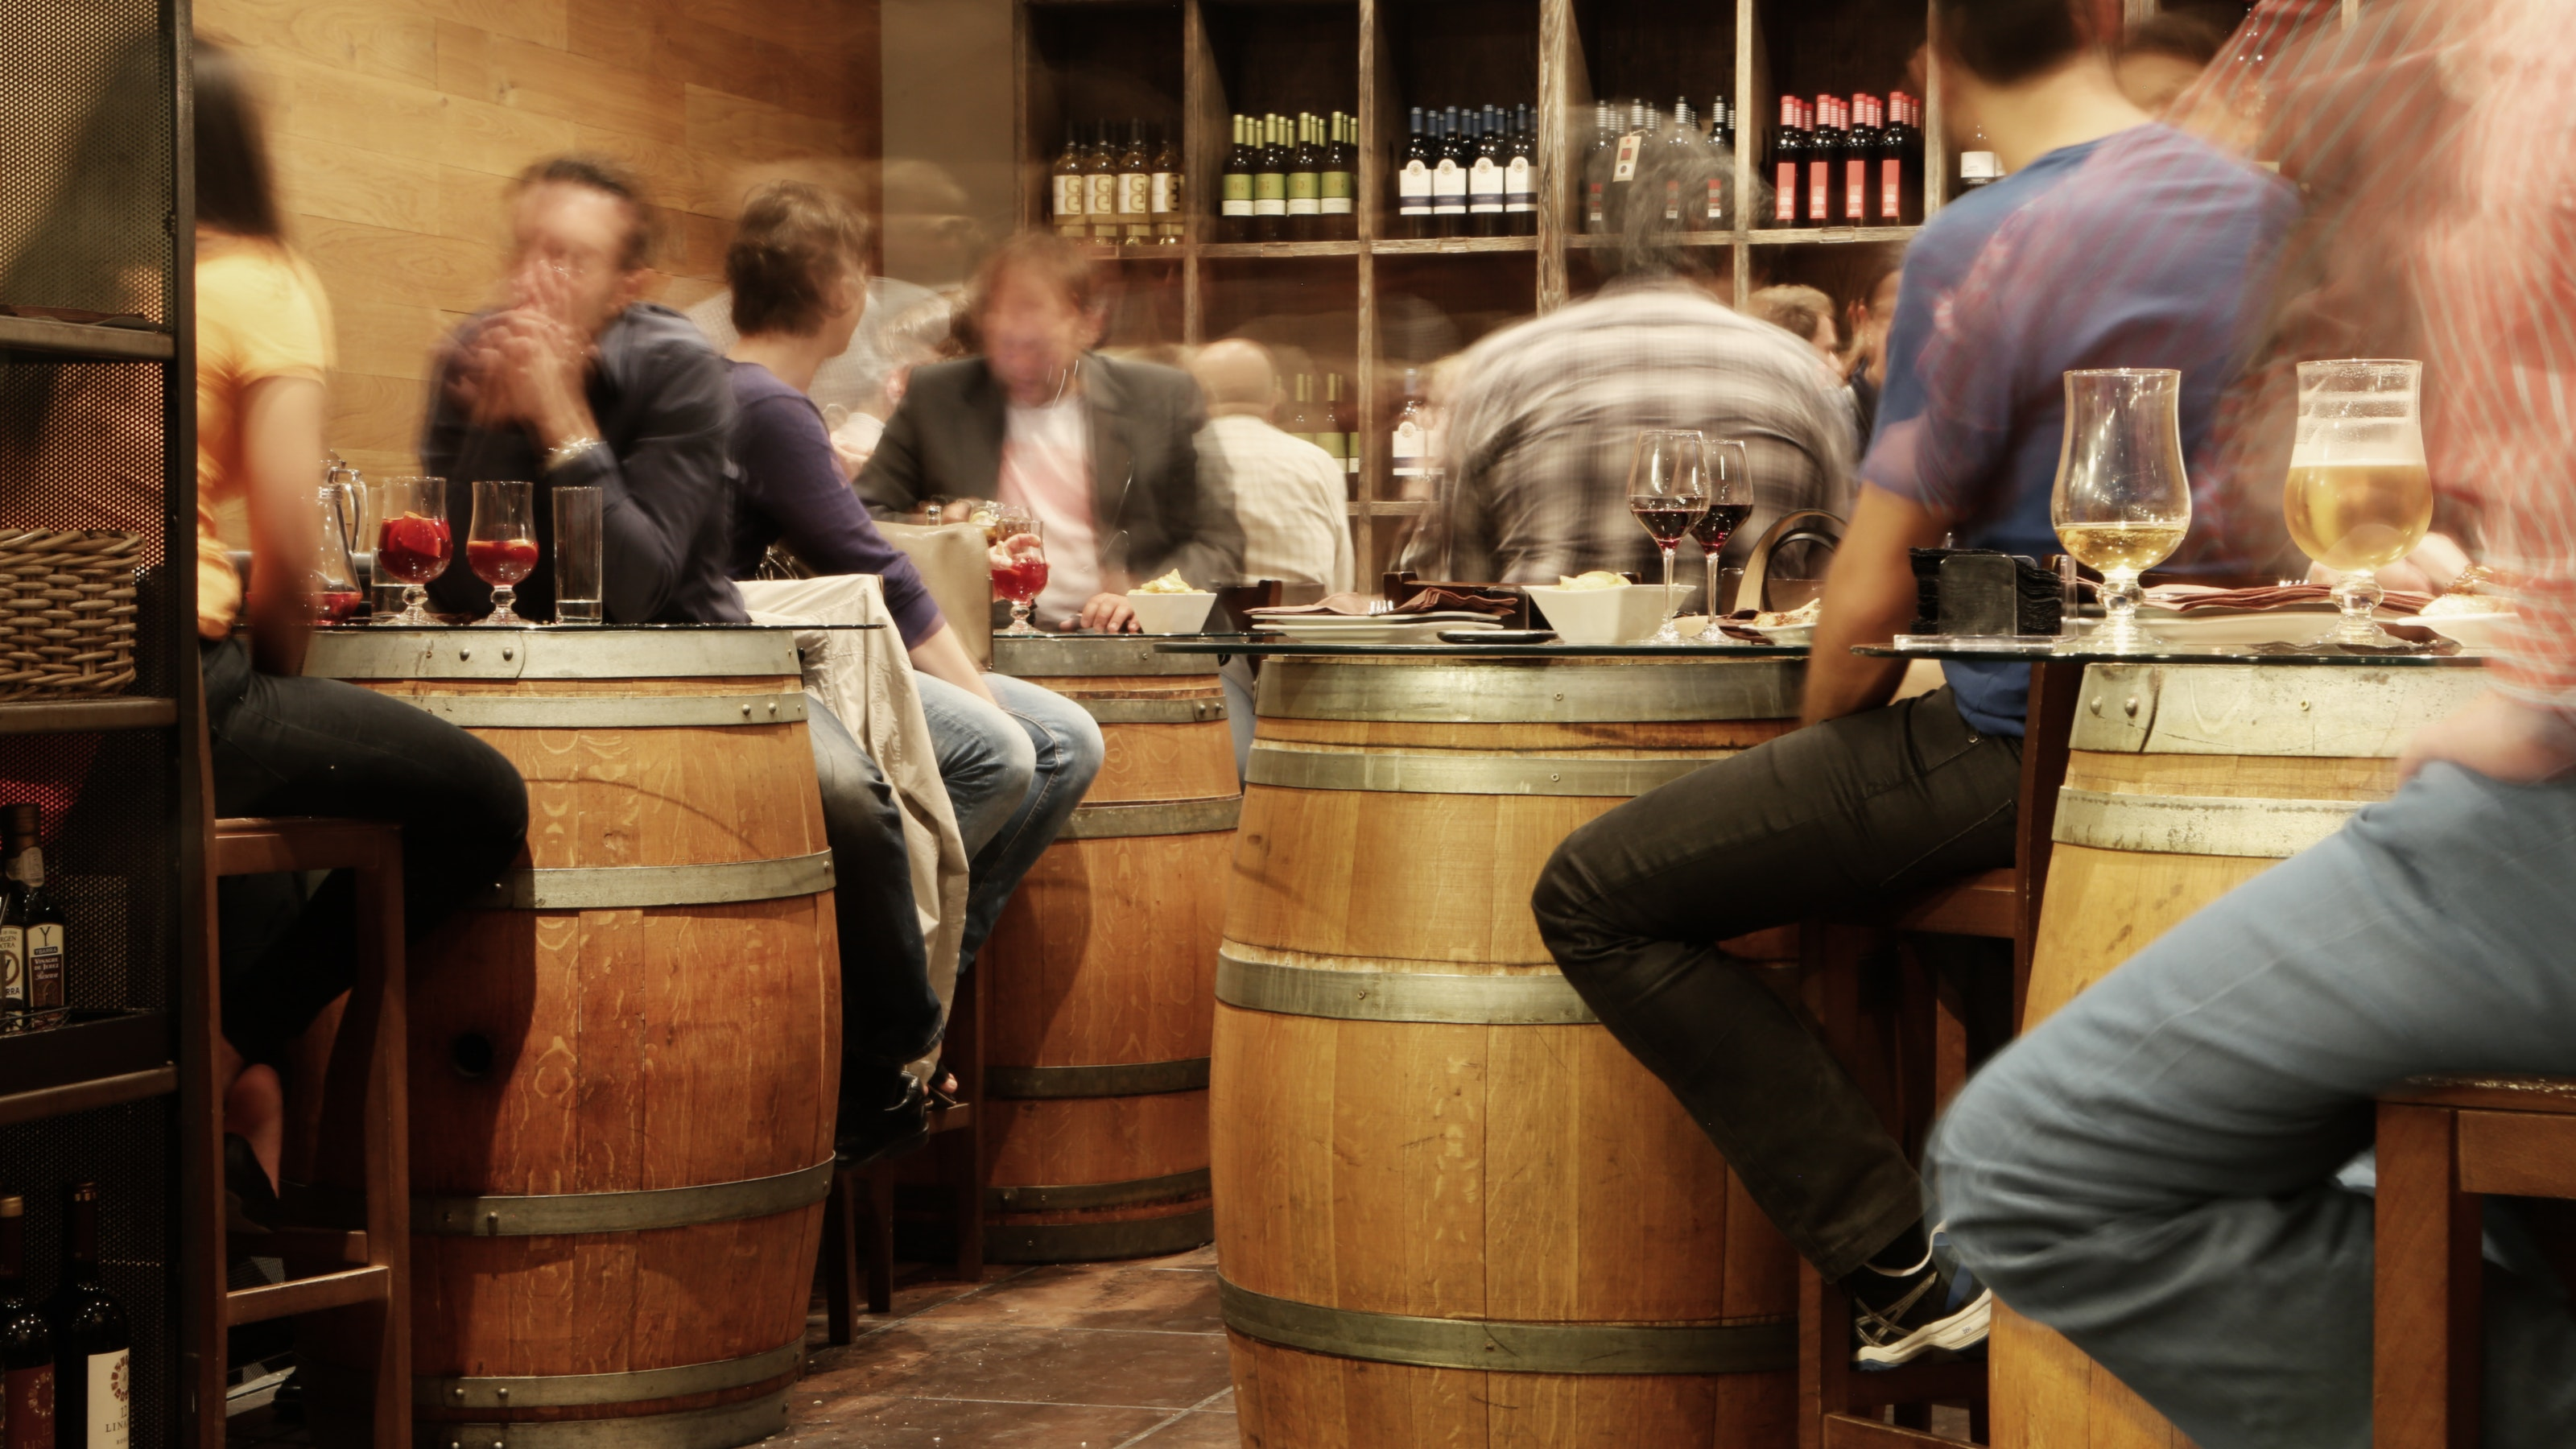 A rustic bar with barrel tables, drinks on them and people chatting.